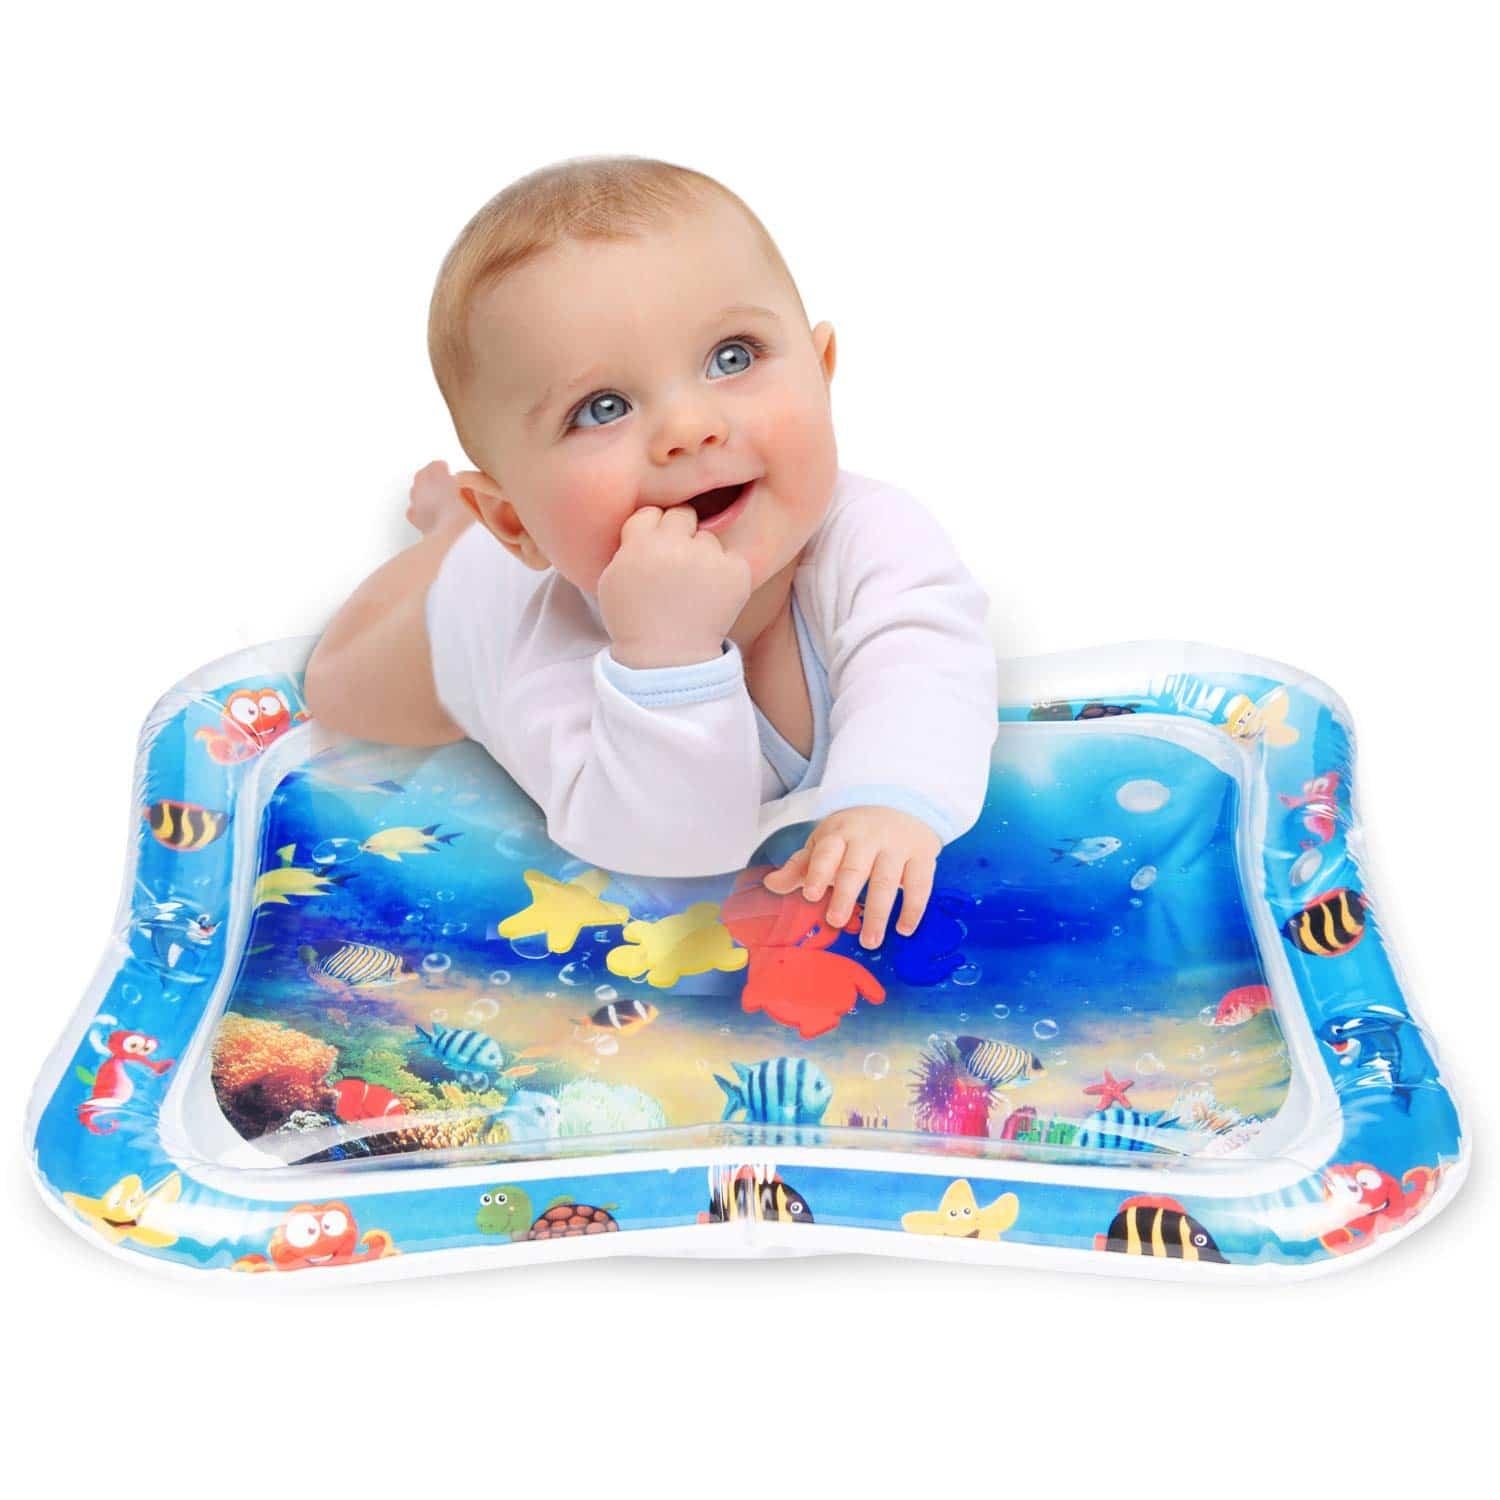 Tummy Time Inflatable Water Play Mat Large Size for Babies Infants Toddlers Kids